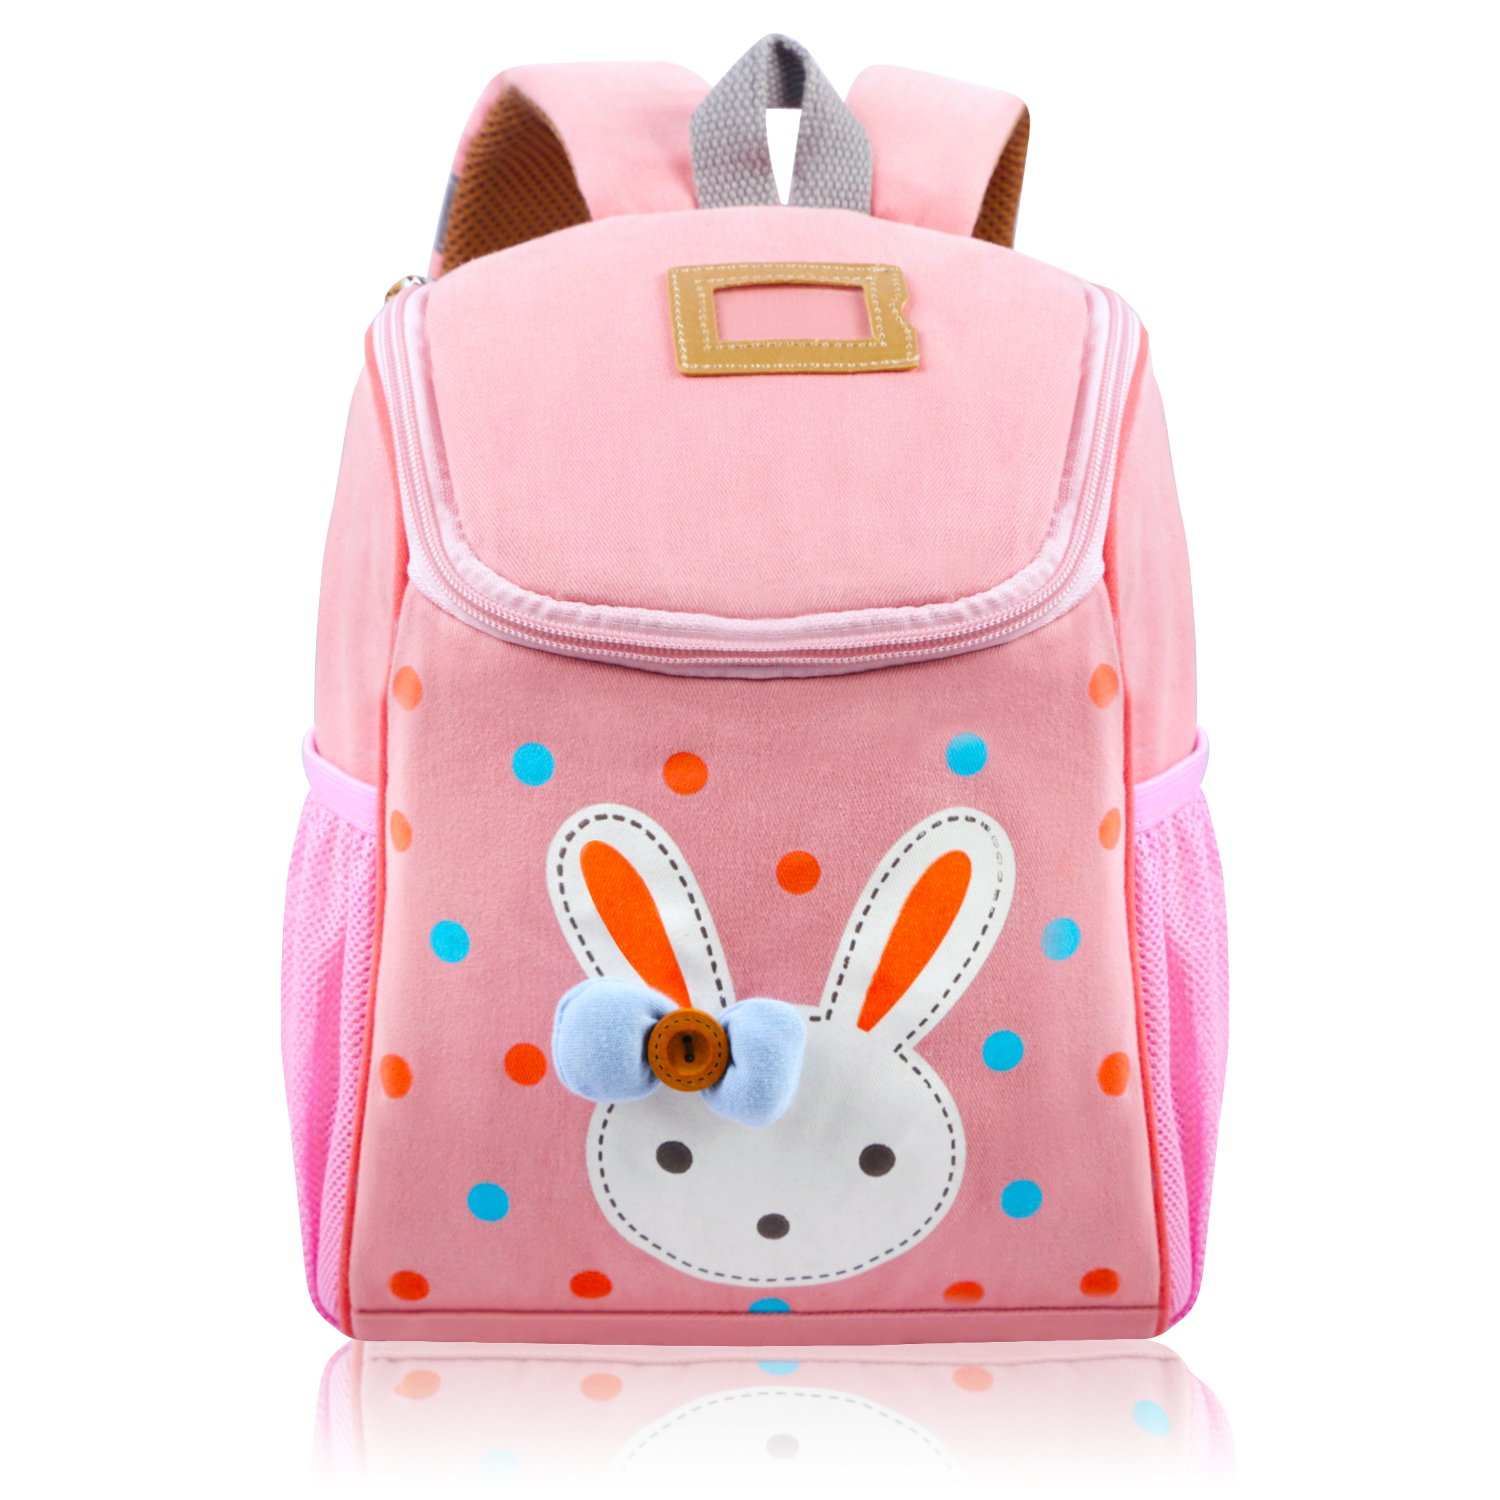 d78fca40de6c9 Vox Toddler Backpack for Girls Little Kids Backpack Cute Rabbit Cartoon  Backpack Preschool Bags, Pink